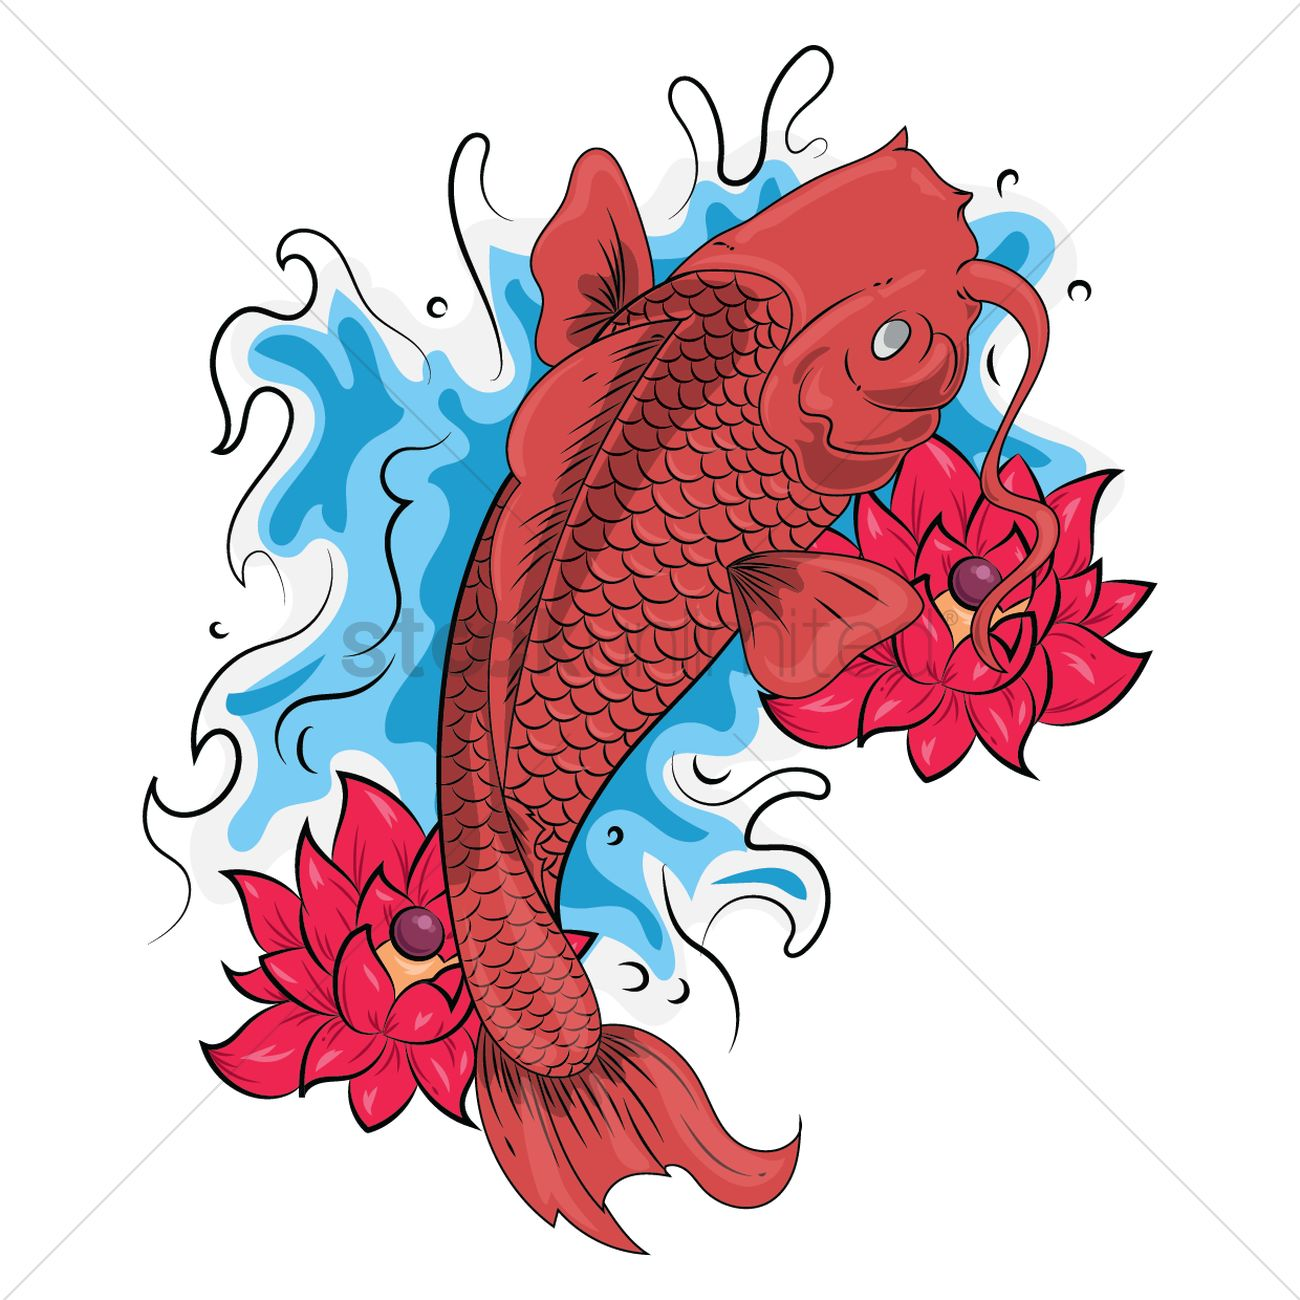 Fish tattoo design Vector Image - 1435579 | StockUnlimited